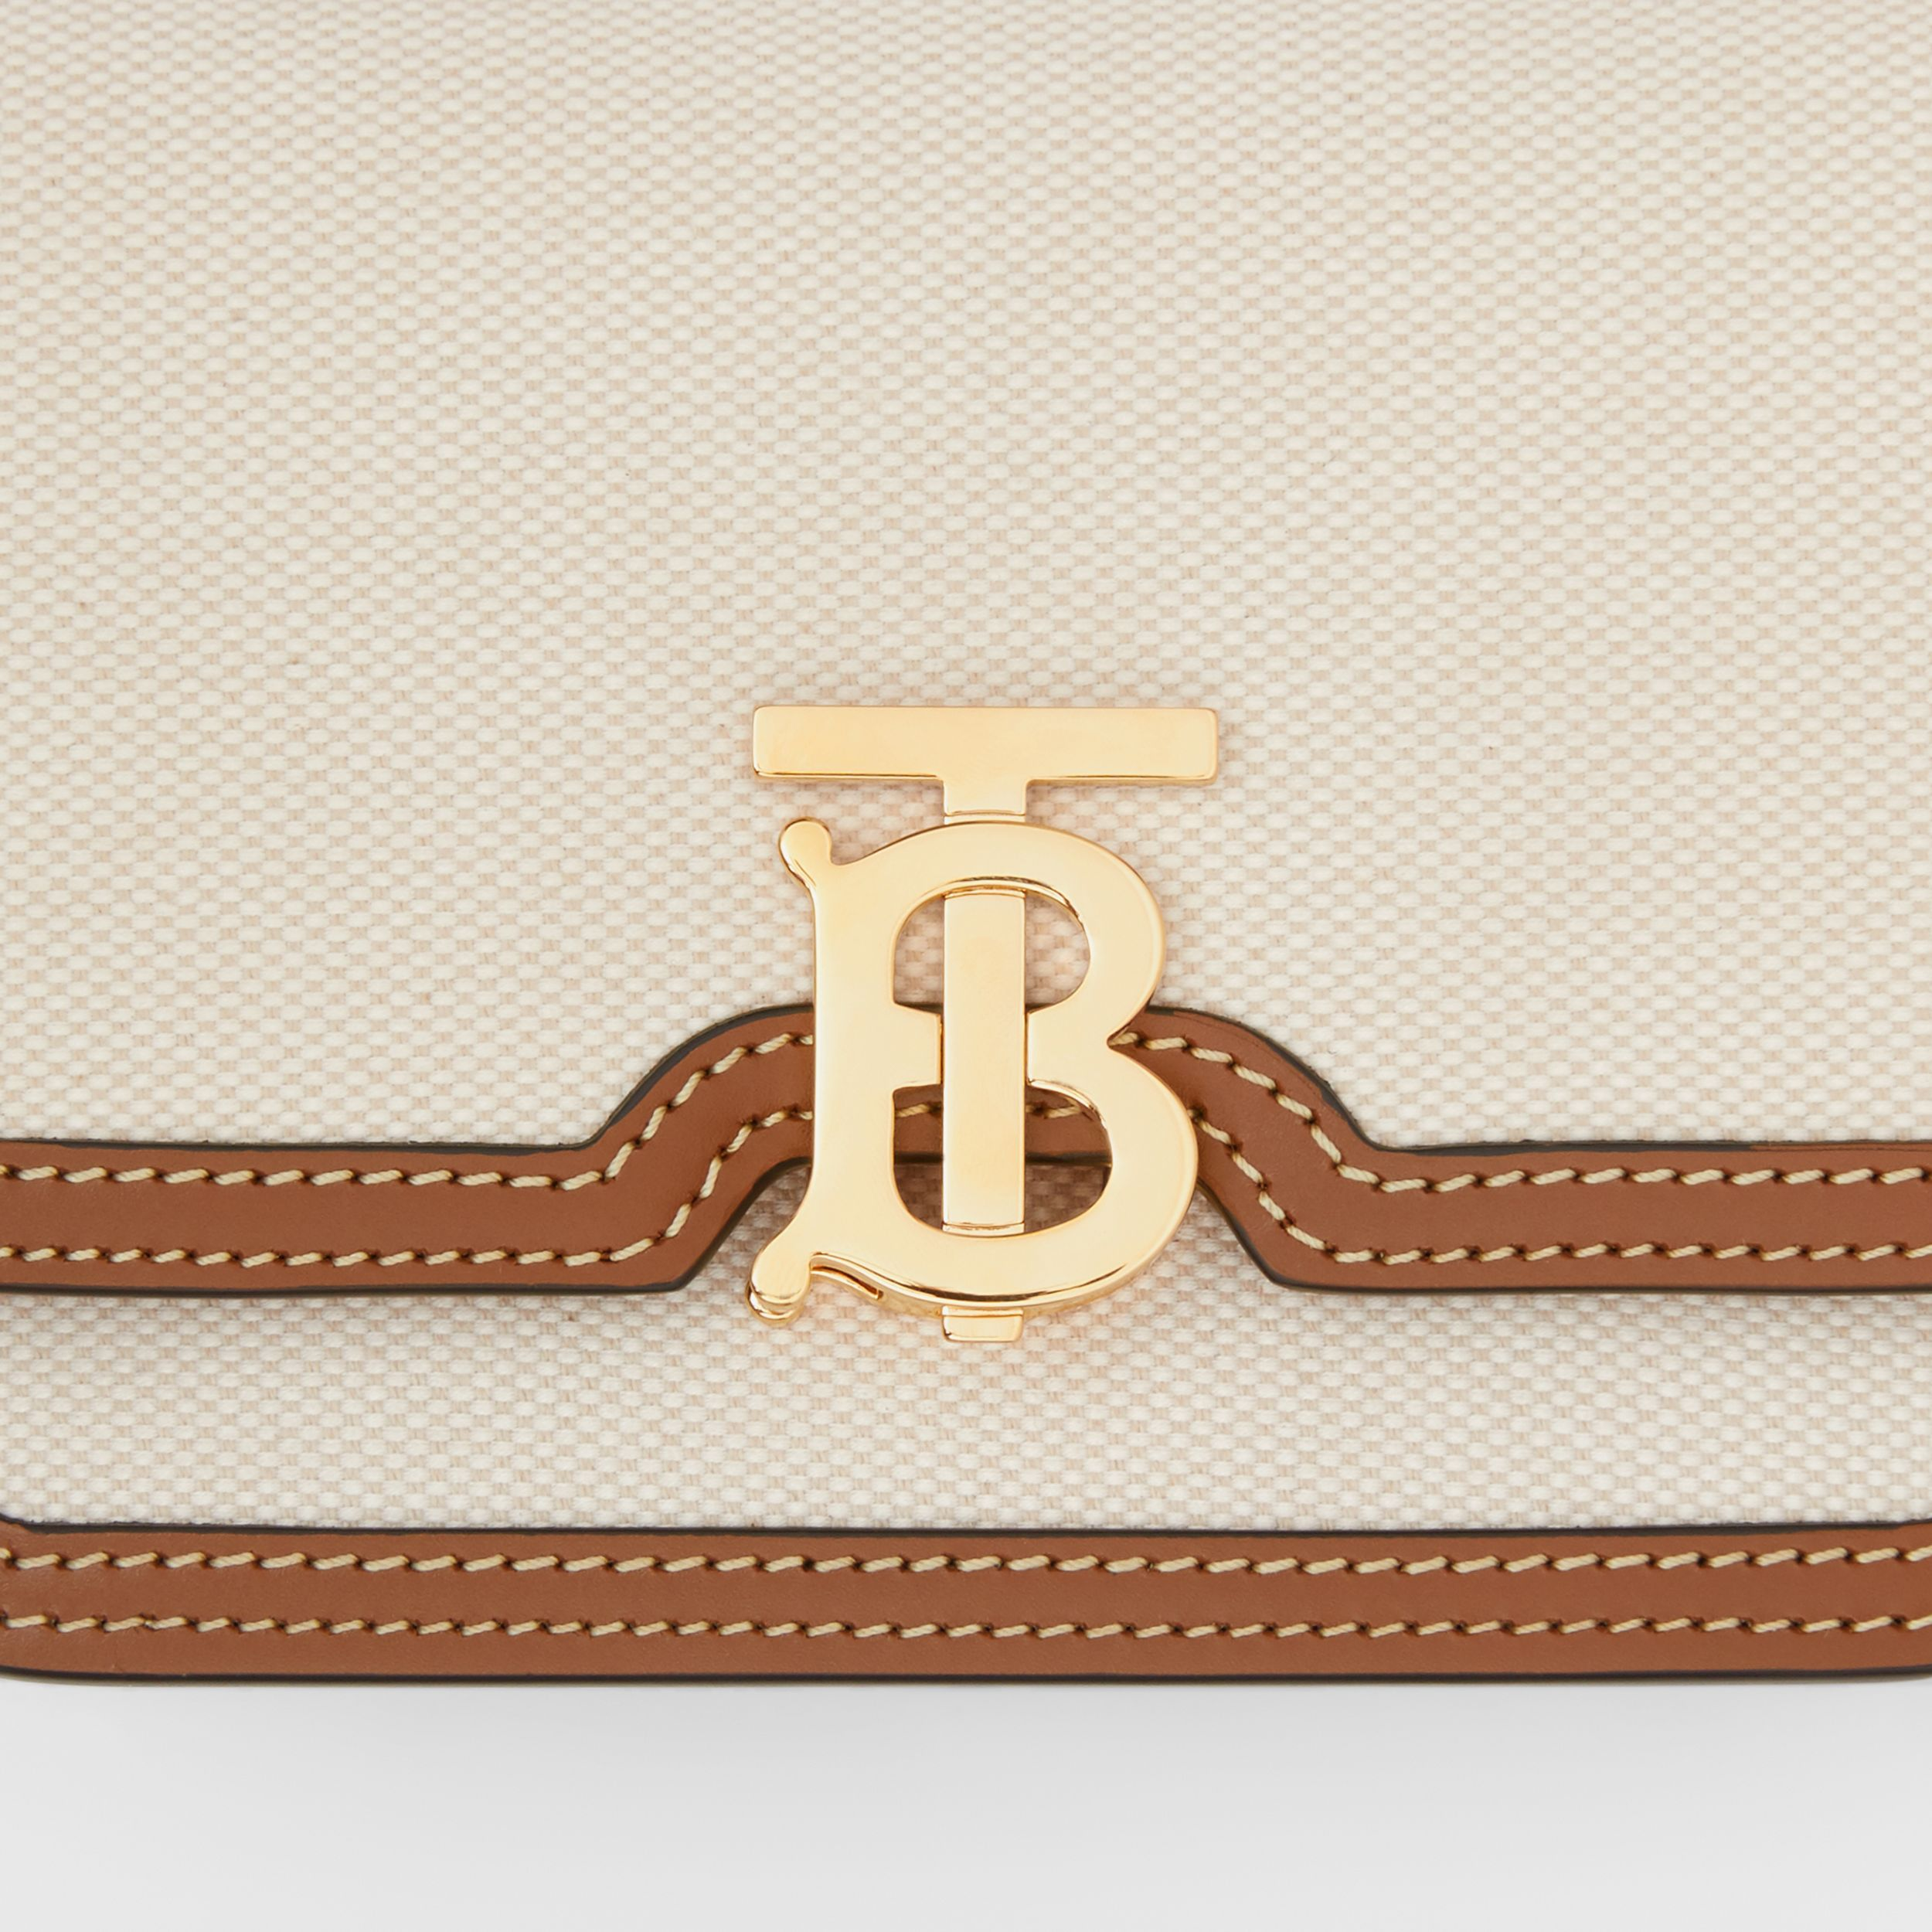 Mini Two-tone Canvas and Leather TB Bag in Natural/malt Brown - Women | Burberry - 2